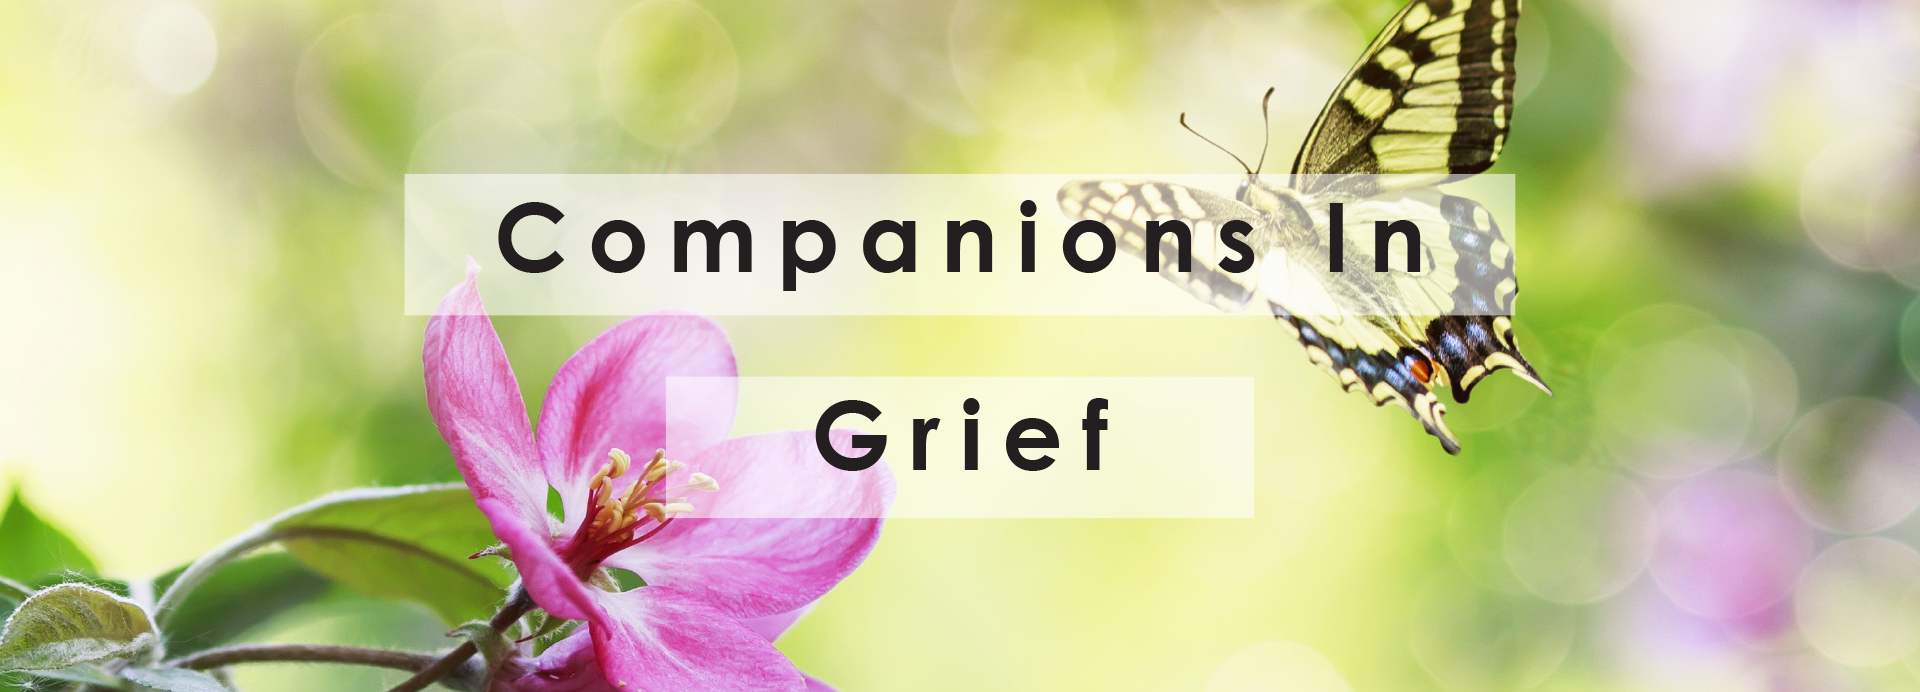 Companions in Grief Support Group